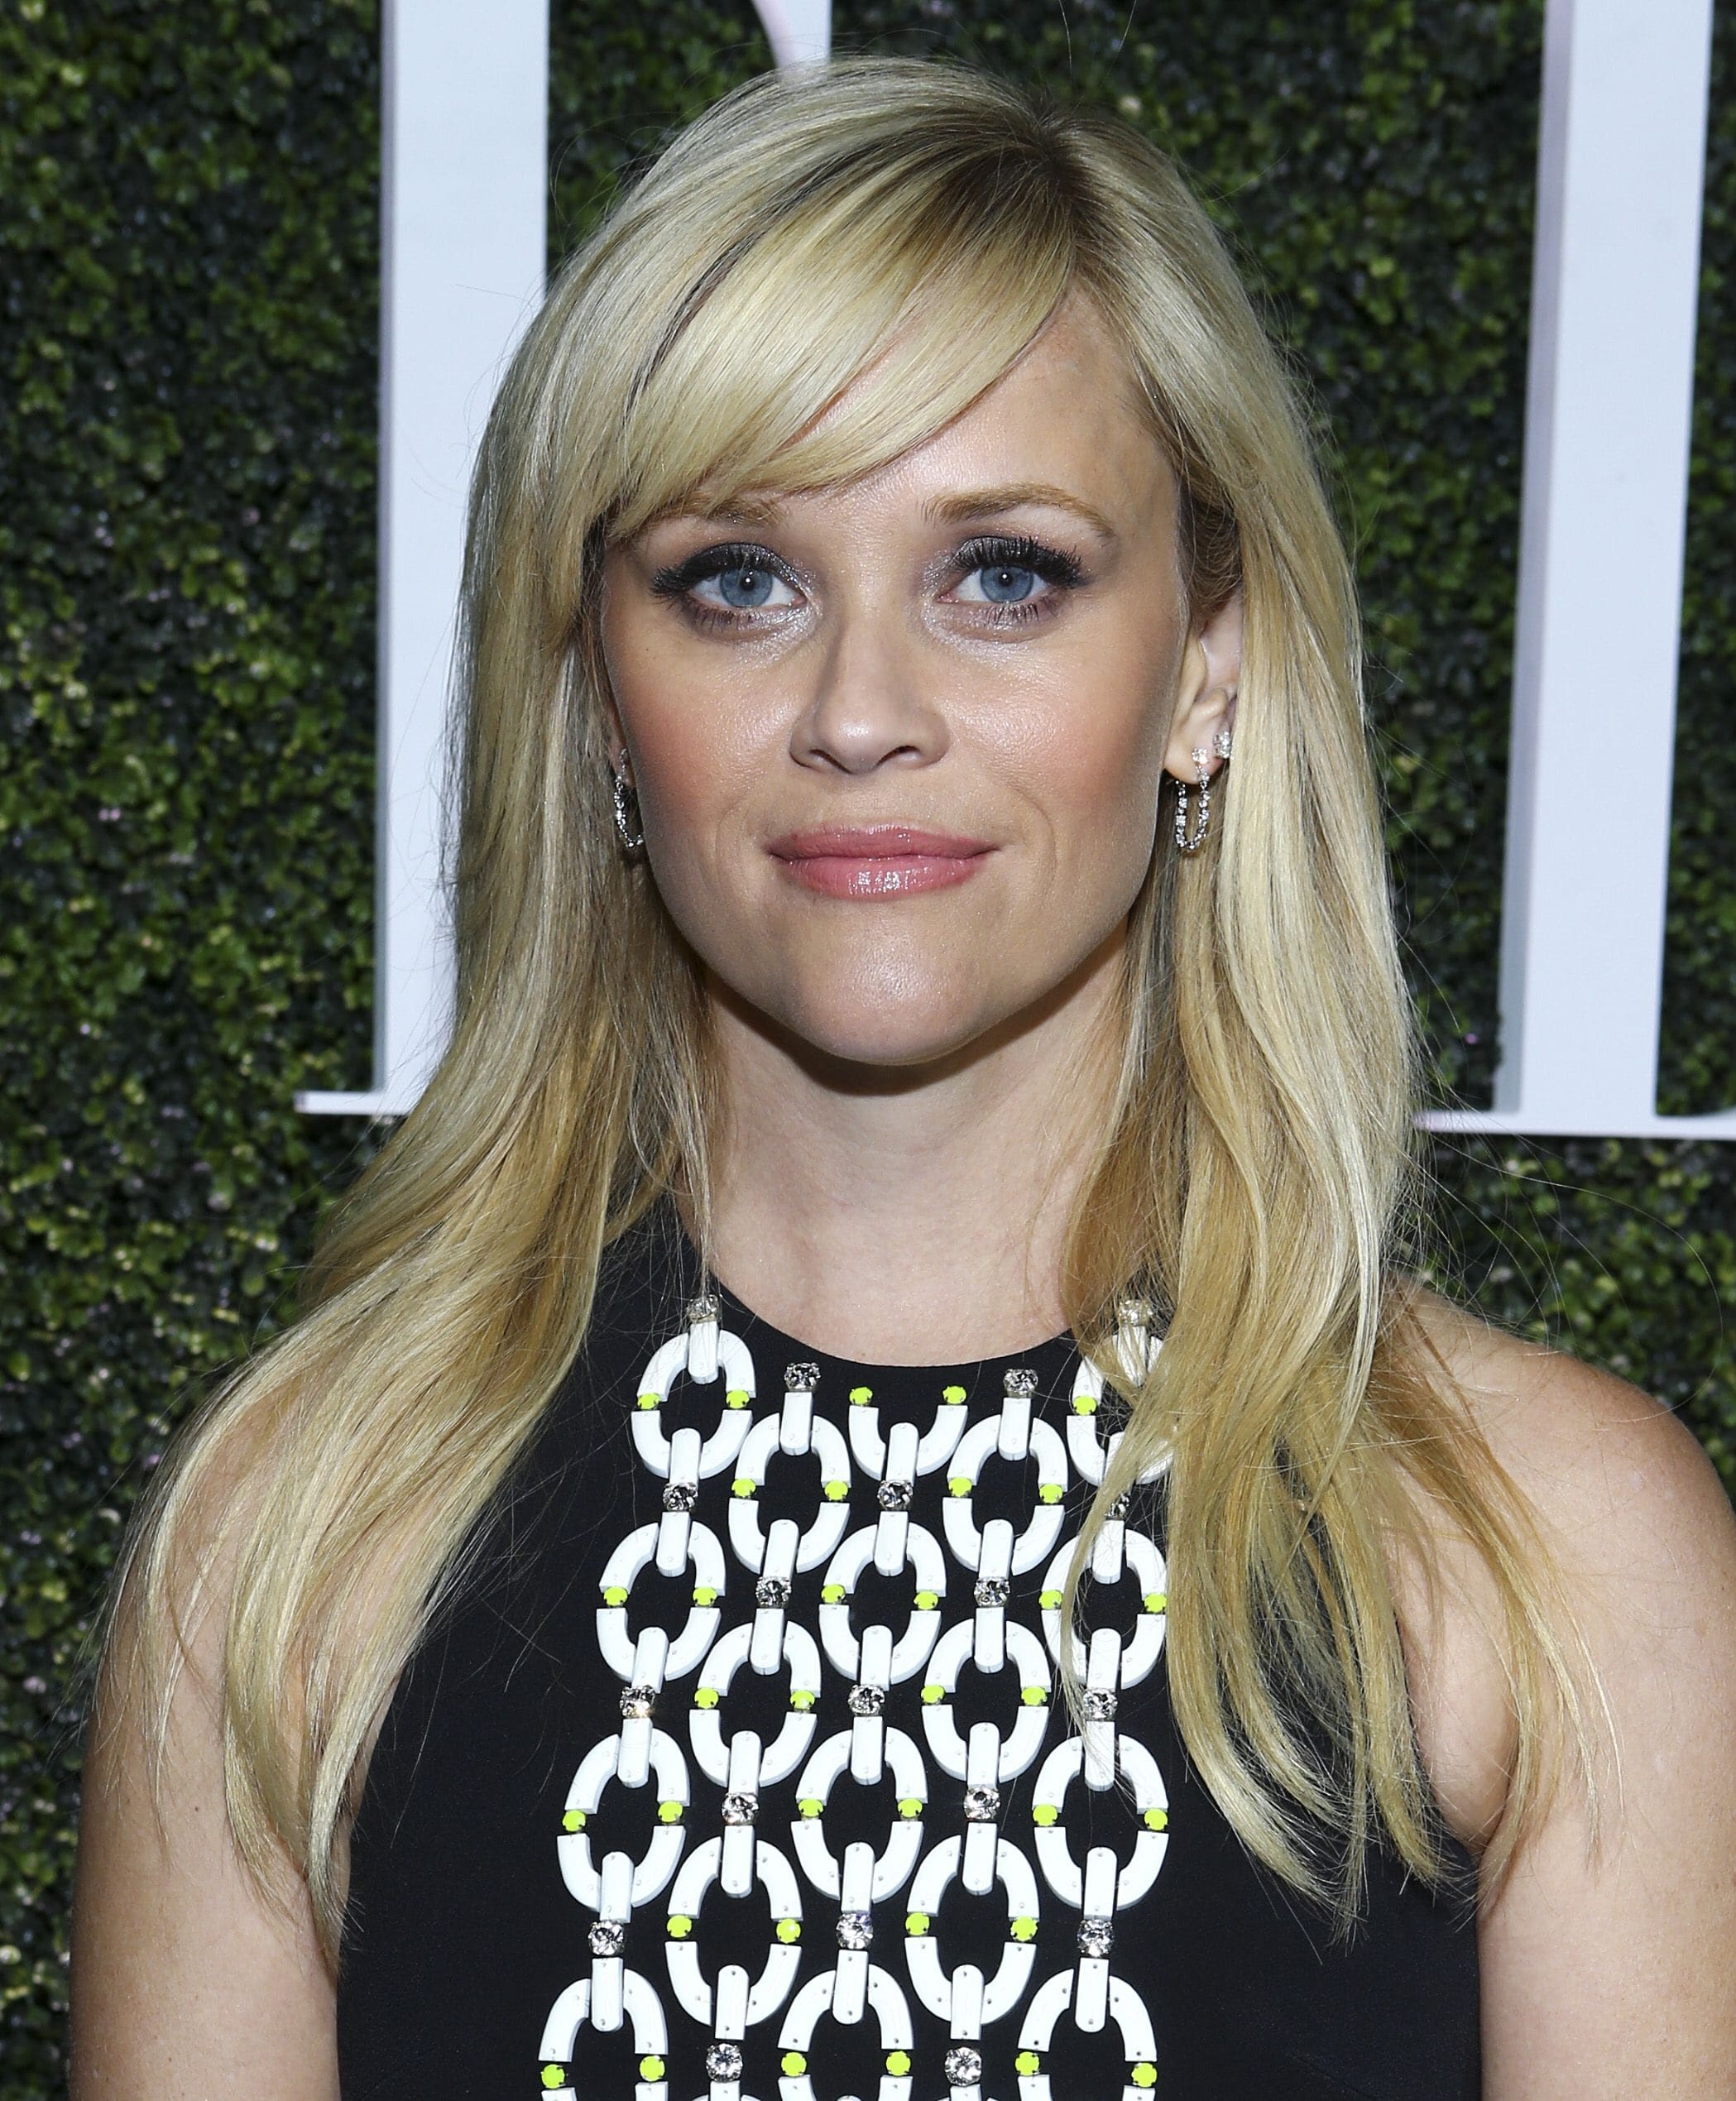 close up shot of reese witherspoon with sleek hairstyle with side fringe hairstyle, wearing all black top